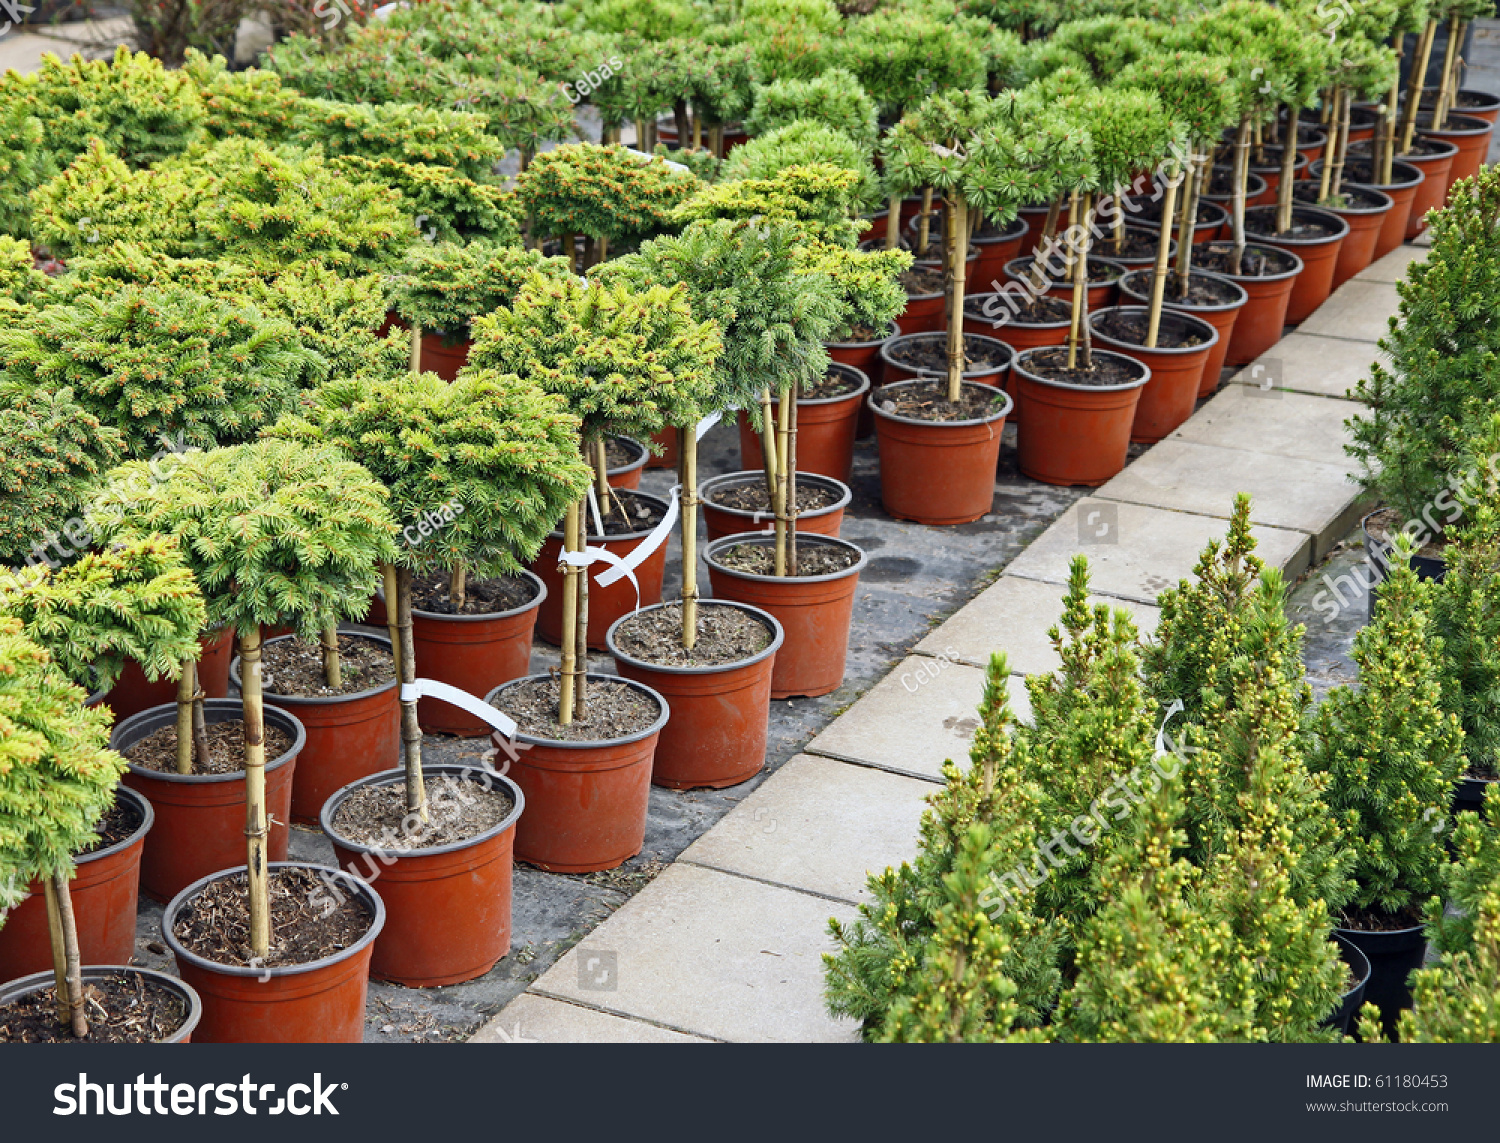 Coniferous Garden Plants Being Sold Plant Stock Photo 61180453